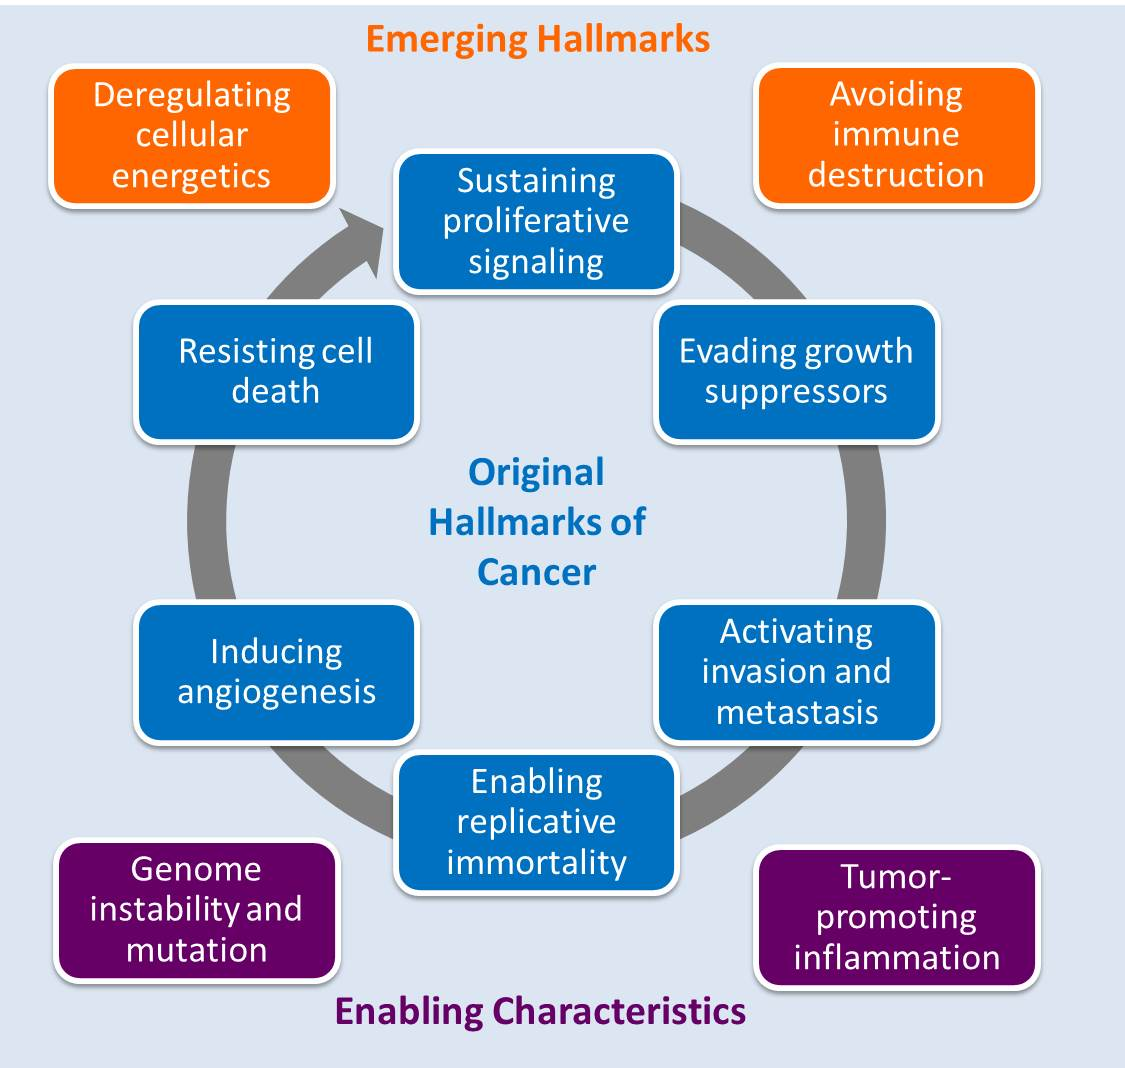 the characteristics of the hallmarks of Hallmarks of science these hallmarks are indicators of science that is being done properly collectively, they characterize the essential features of the scientific process – features that mean we can trust scientific outcomes, even though they are the products of humans with the normal individual human failings.